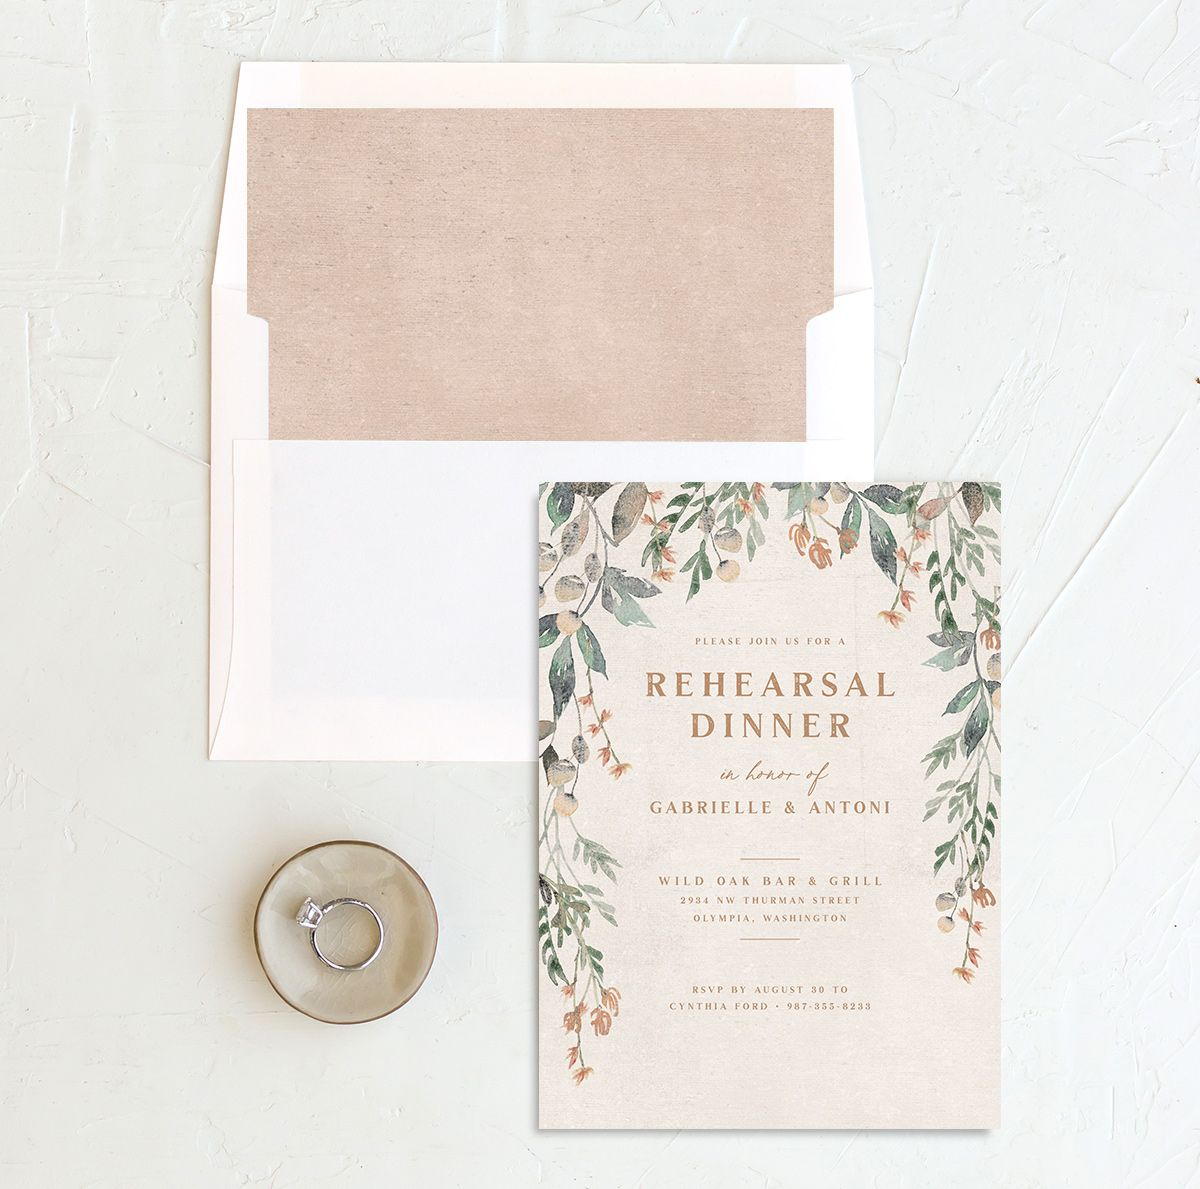 Rustic Vines rehearsal dinner invitation